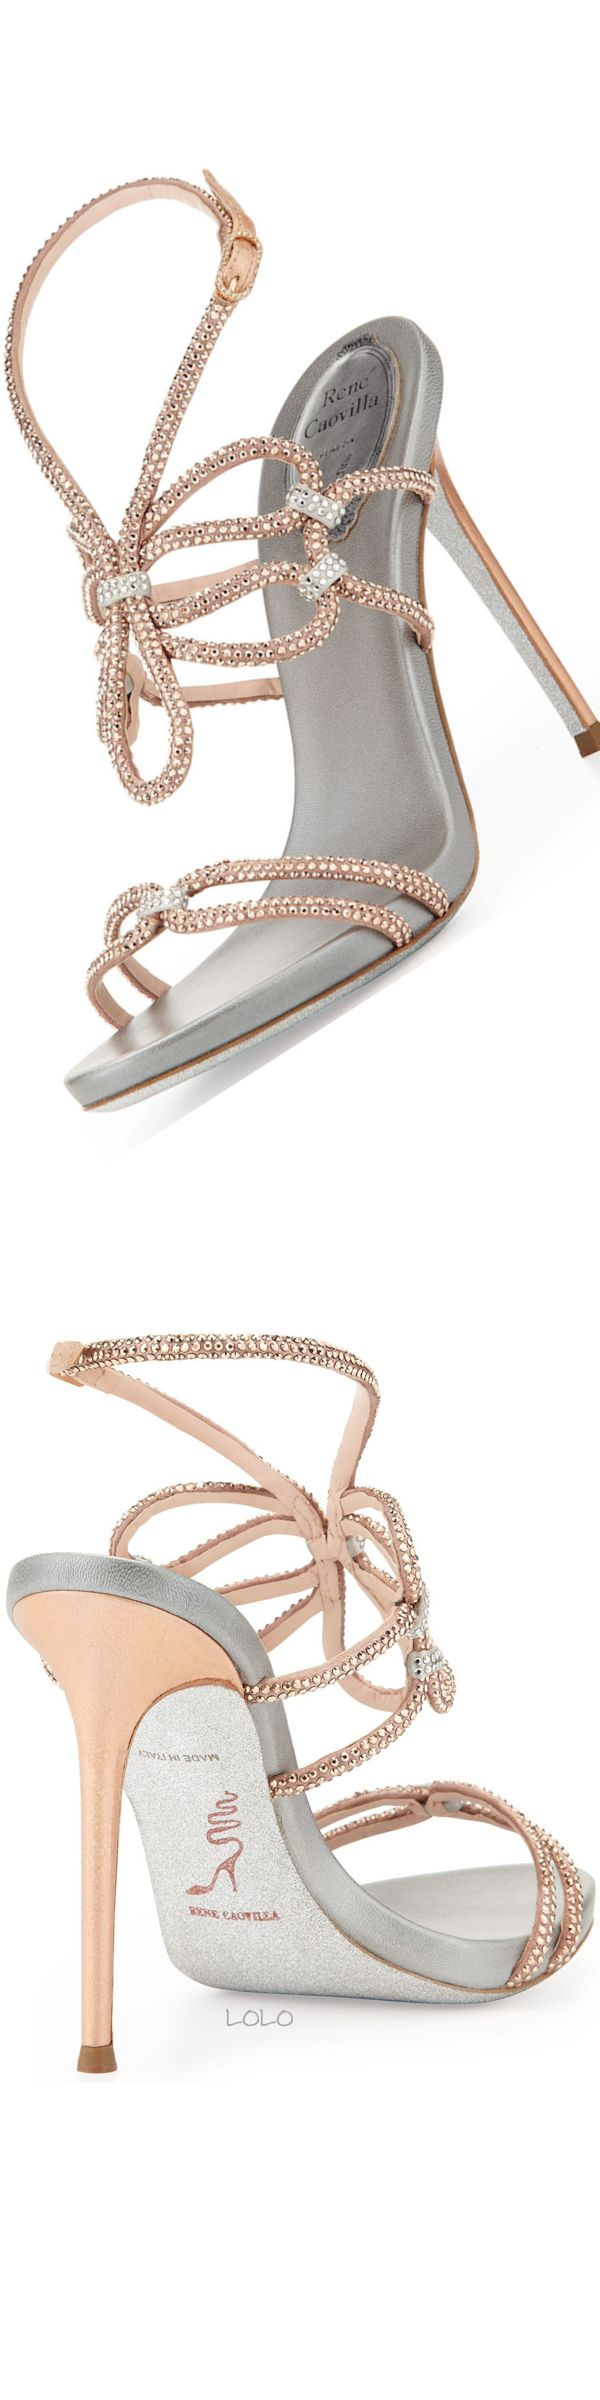 Rene Caovilla Strappy Sandals . . #stilettos